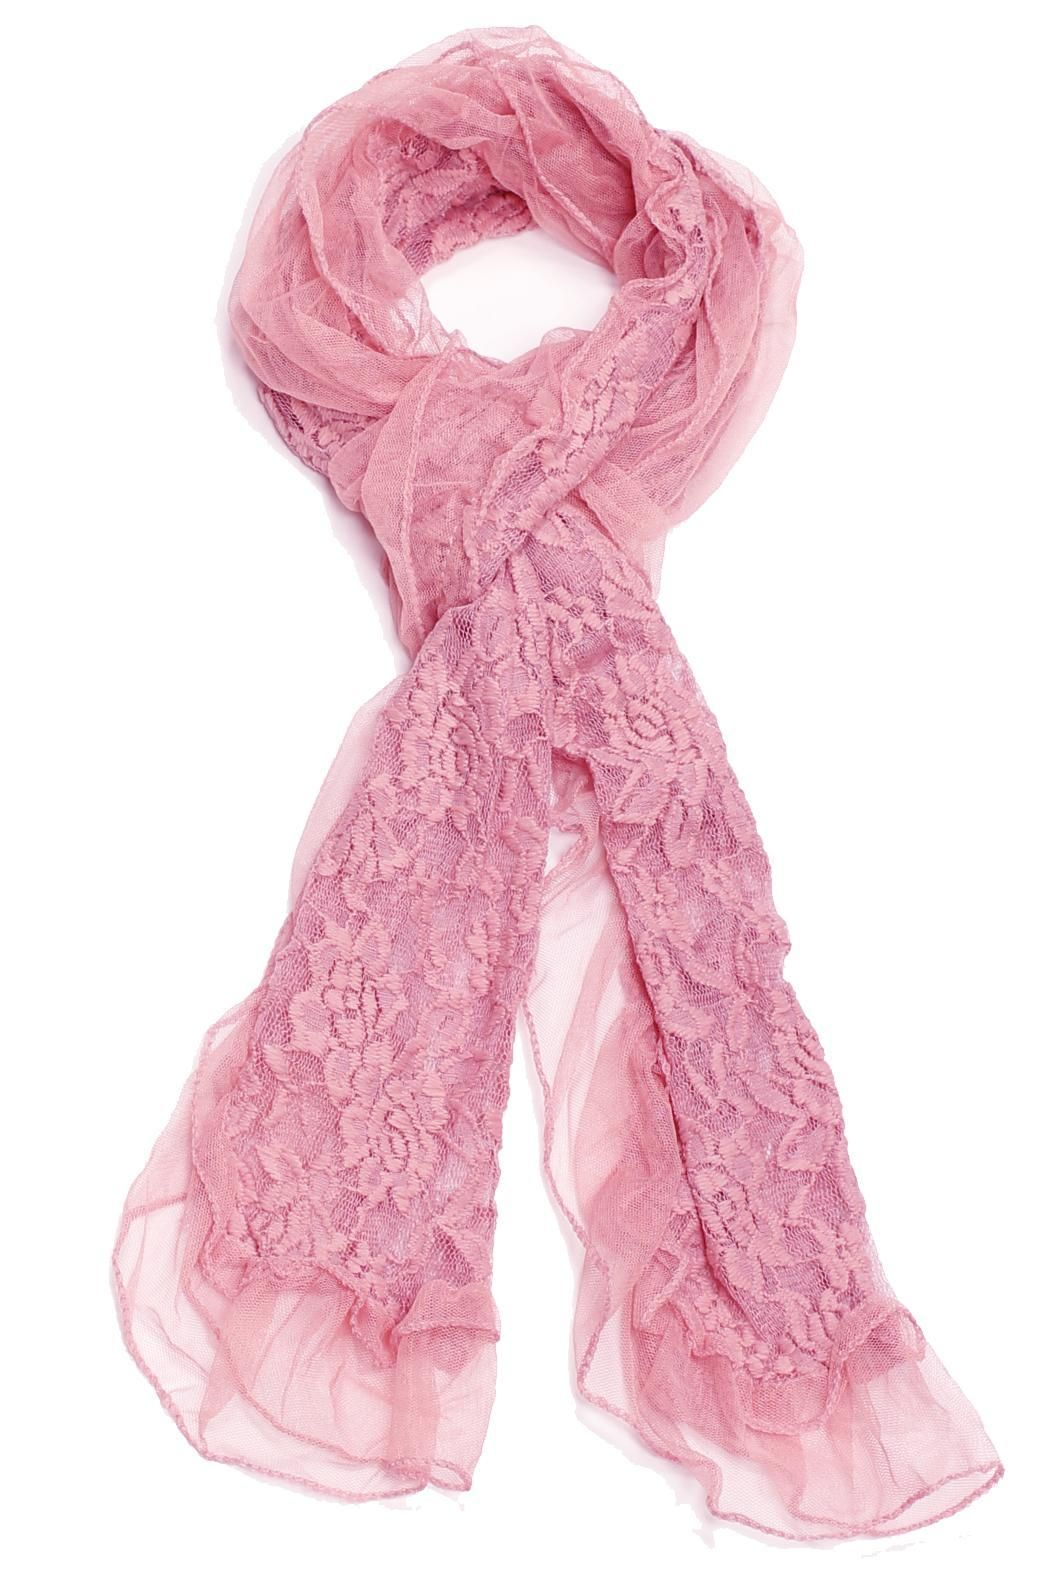 Lace flower scarf with a lightweight construction.  Lace Flower Scarf by Violet Del Mar. Accessories - Scarves & Wraps San Diego California